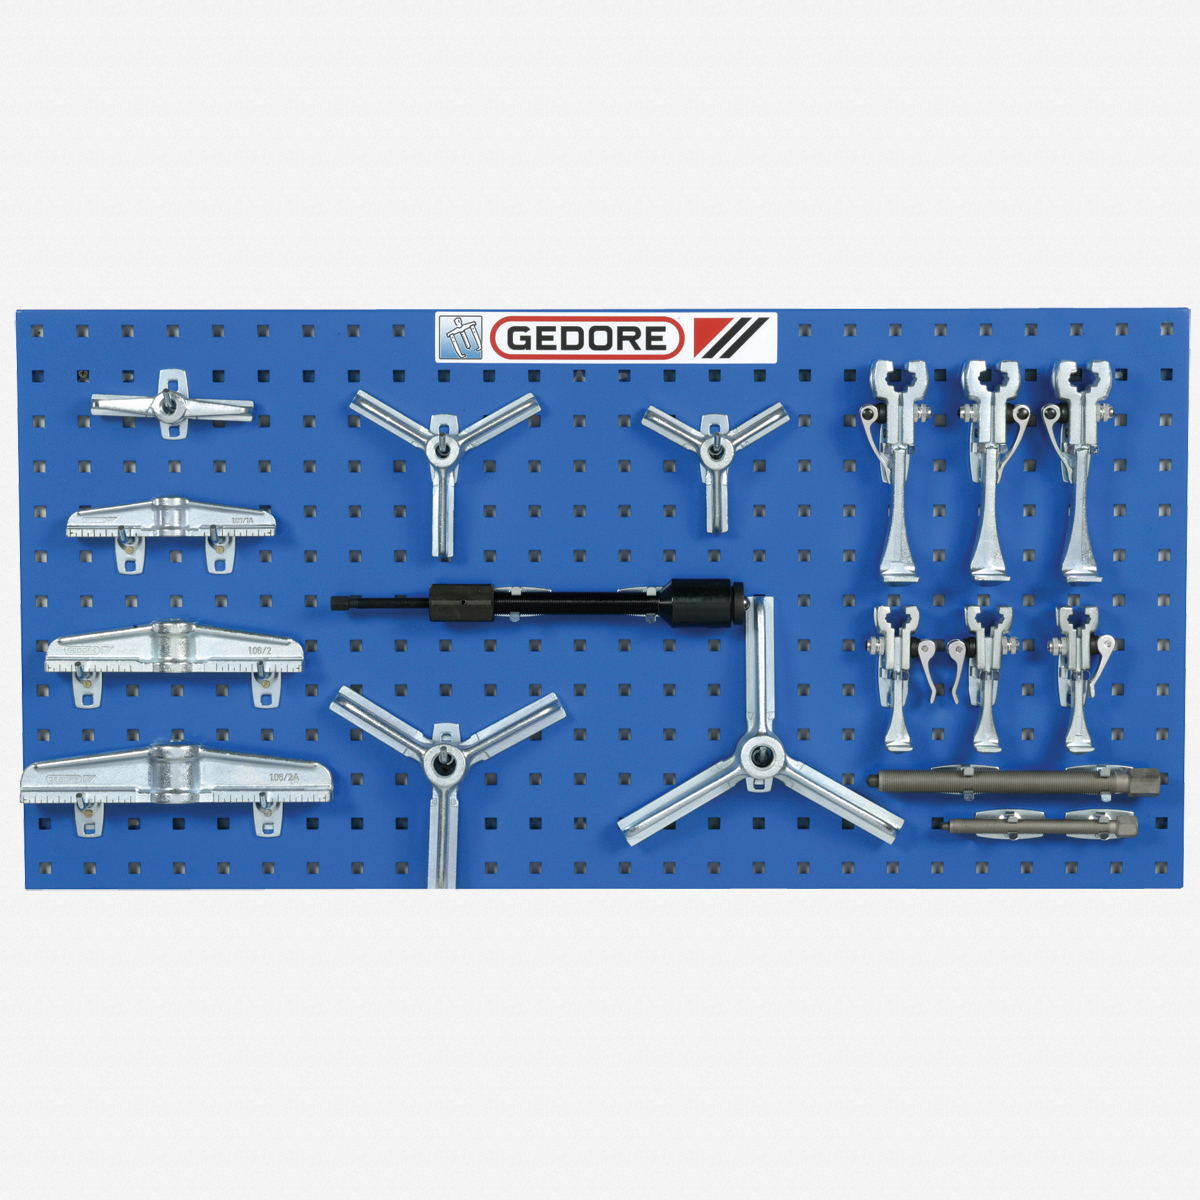 Gedore 2.30 Industrial pulling set, Add-on system - KC Tool